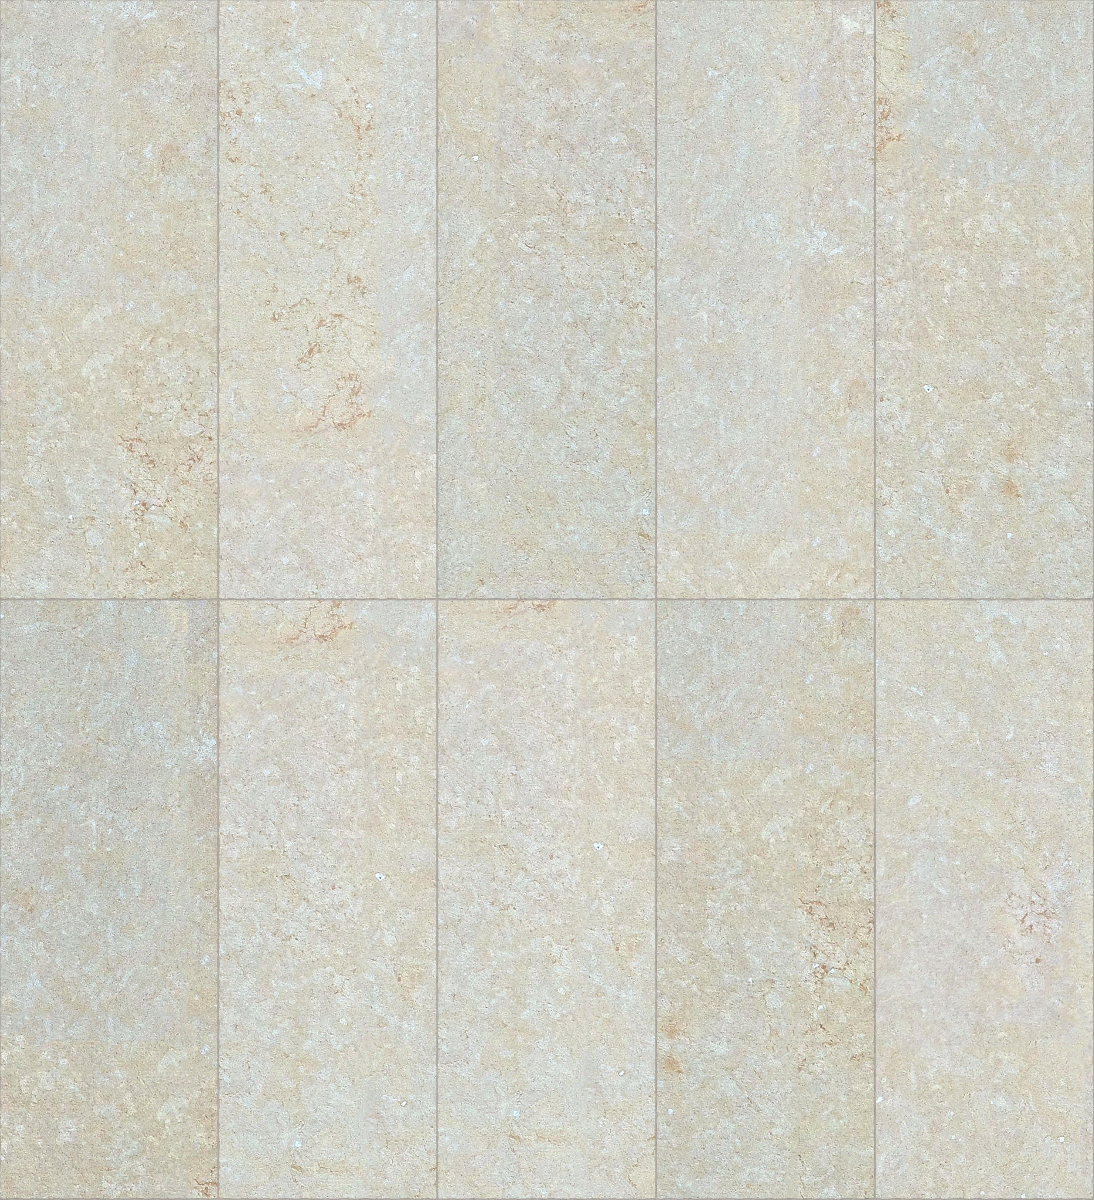 A seamless stone texture with reconstituted stone blocks arranged in a stack pattern